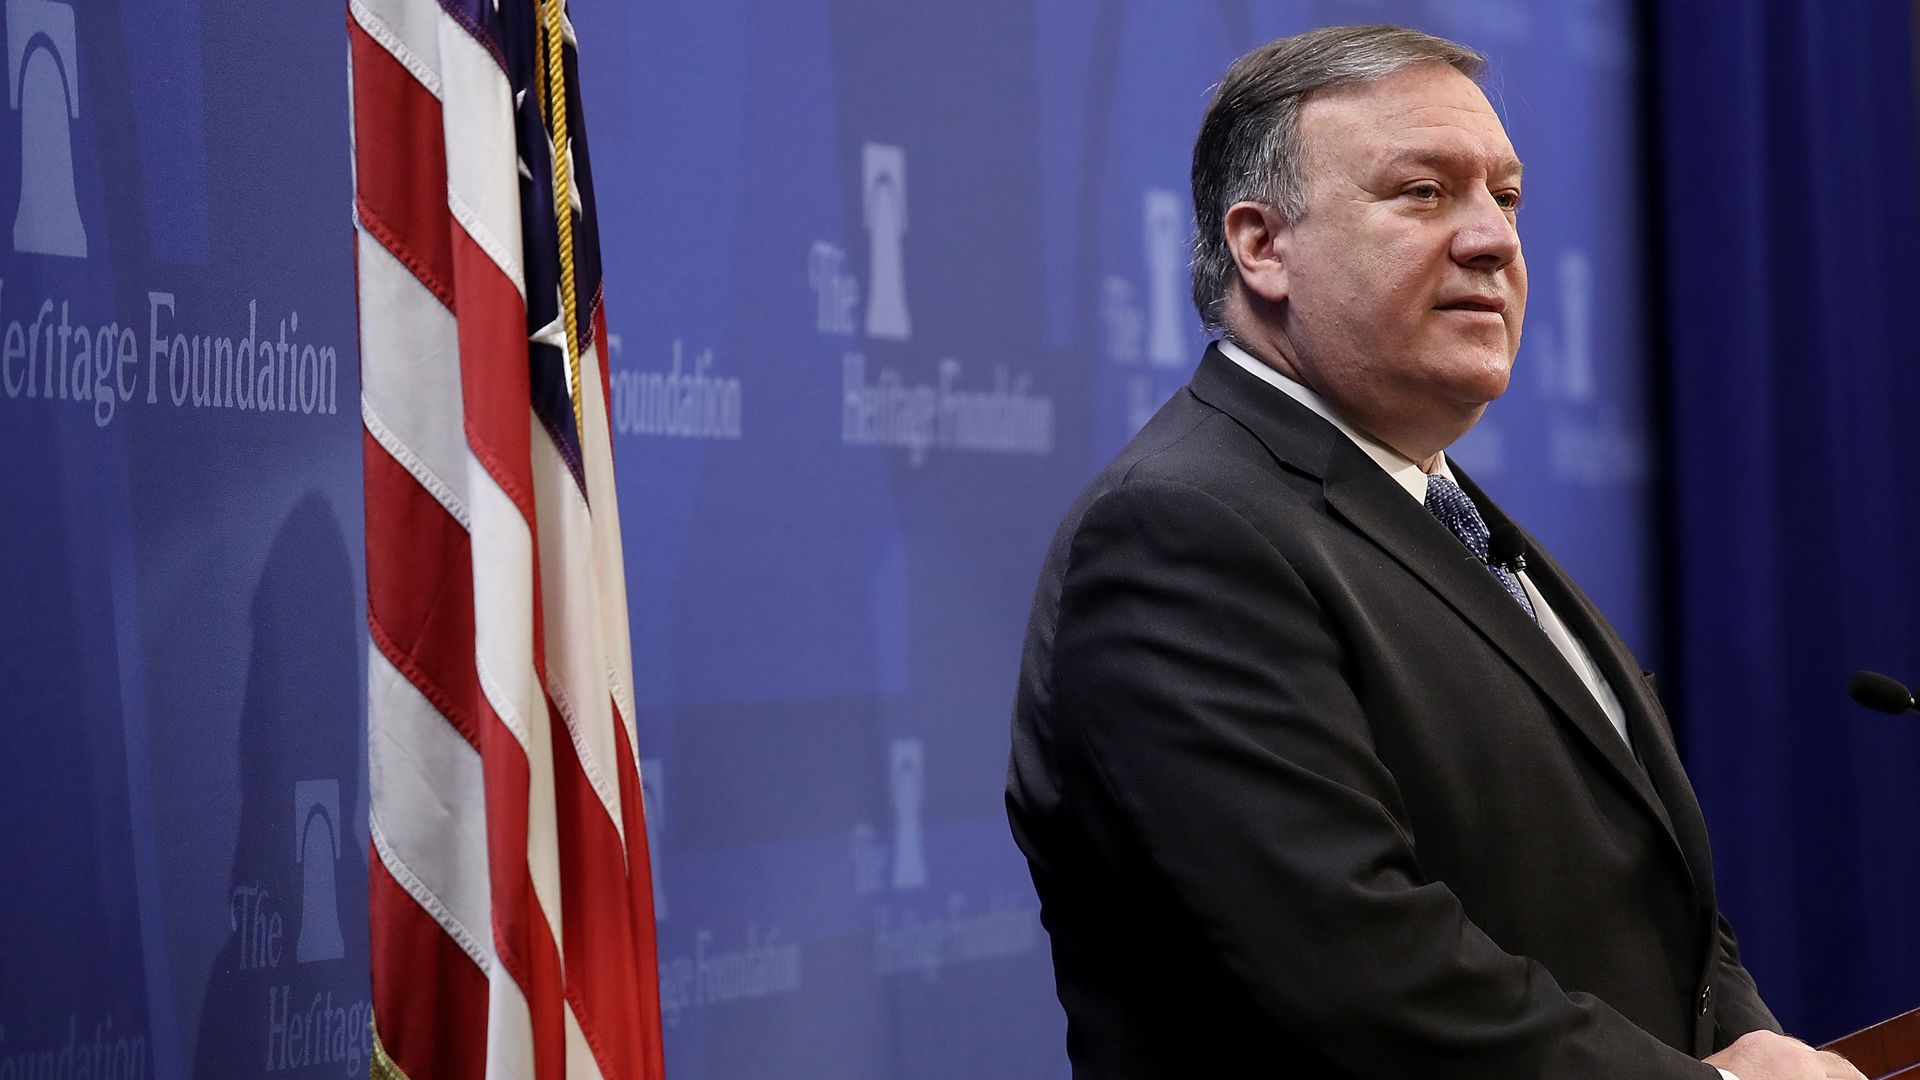 Mike Pompeo at lectern with American flag